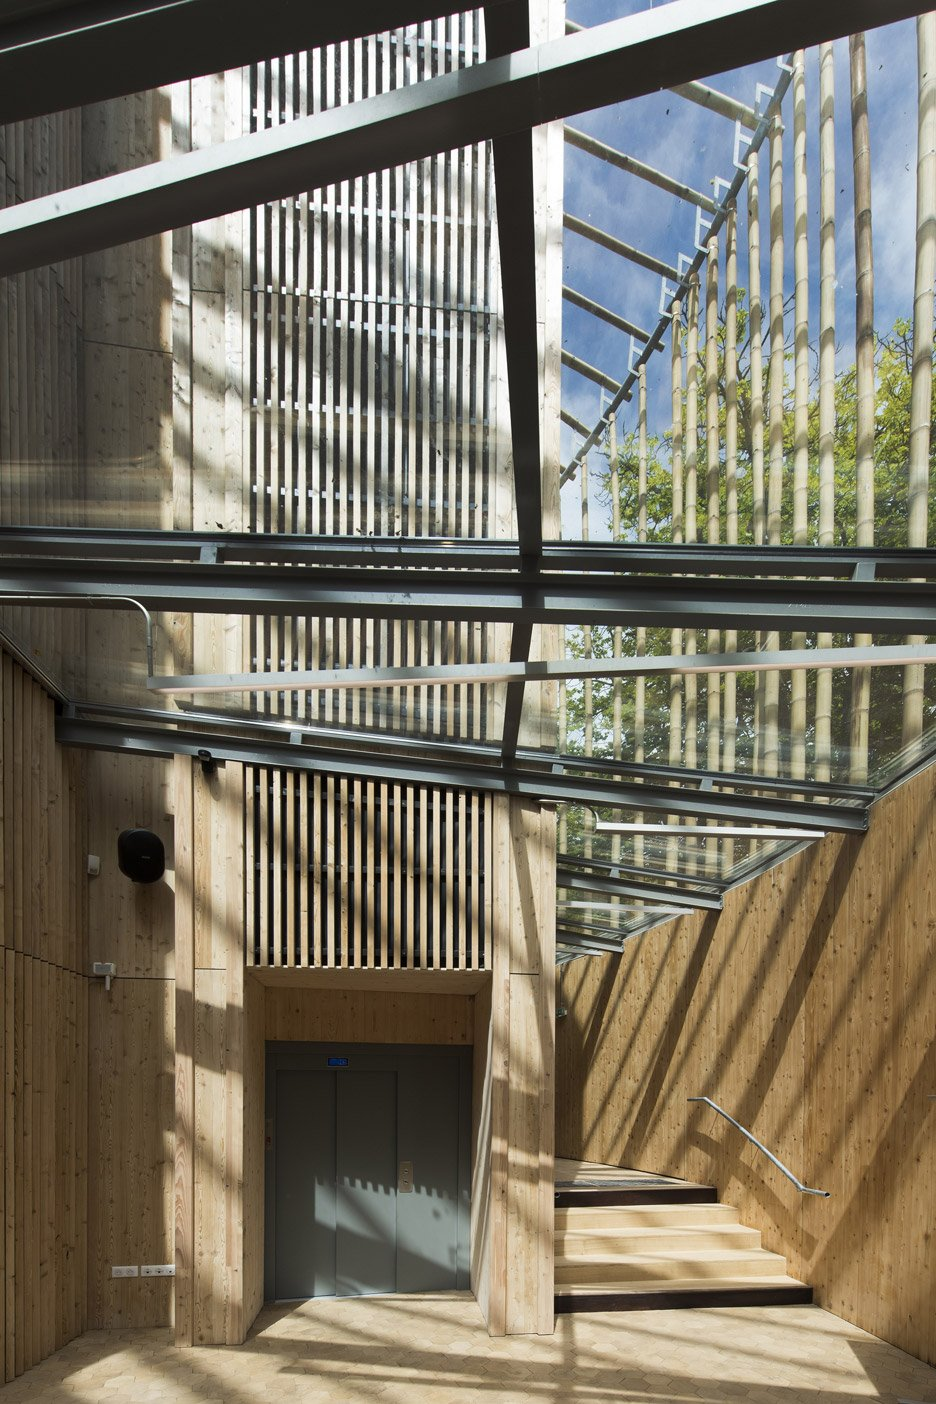 andrew-todd-theatre-pas-de-calais-globe-elizabethan-france-cross-laminated-timber_dezeen_936_0